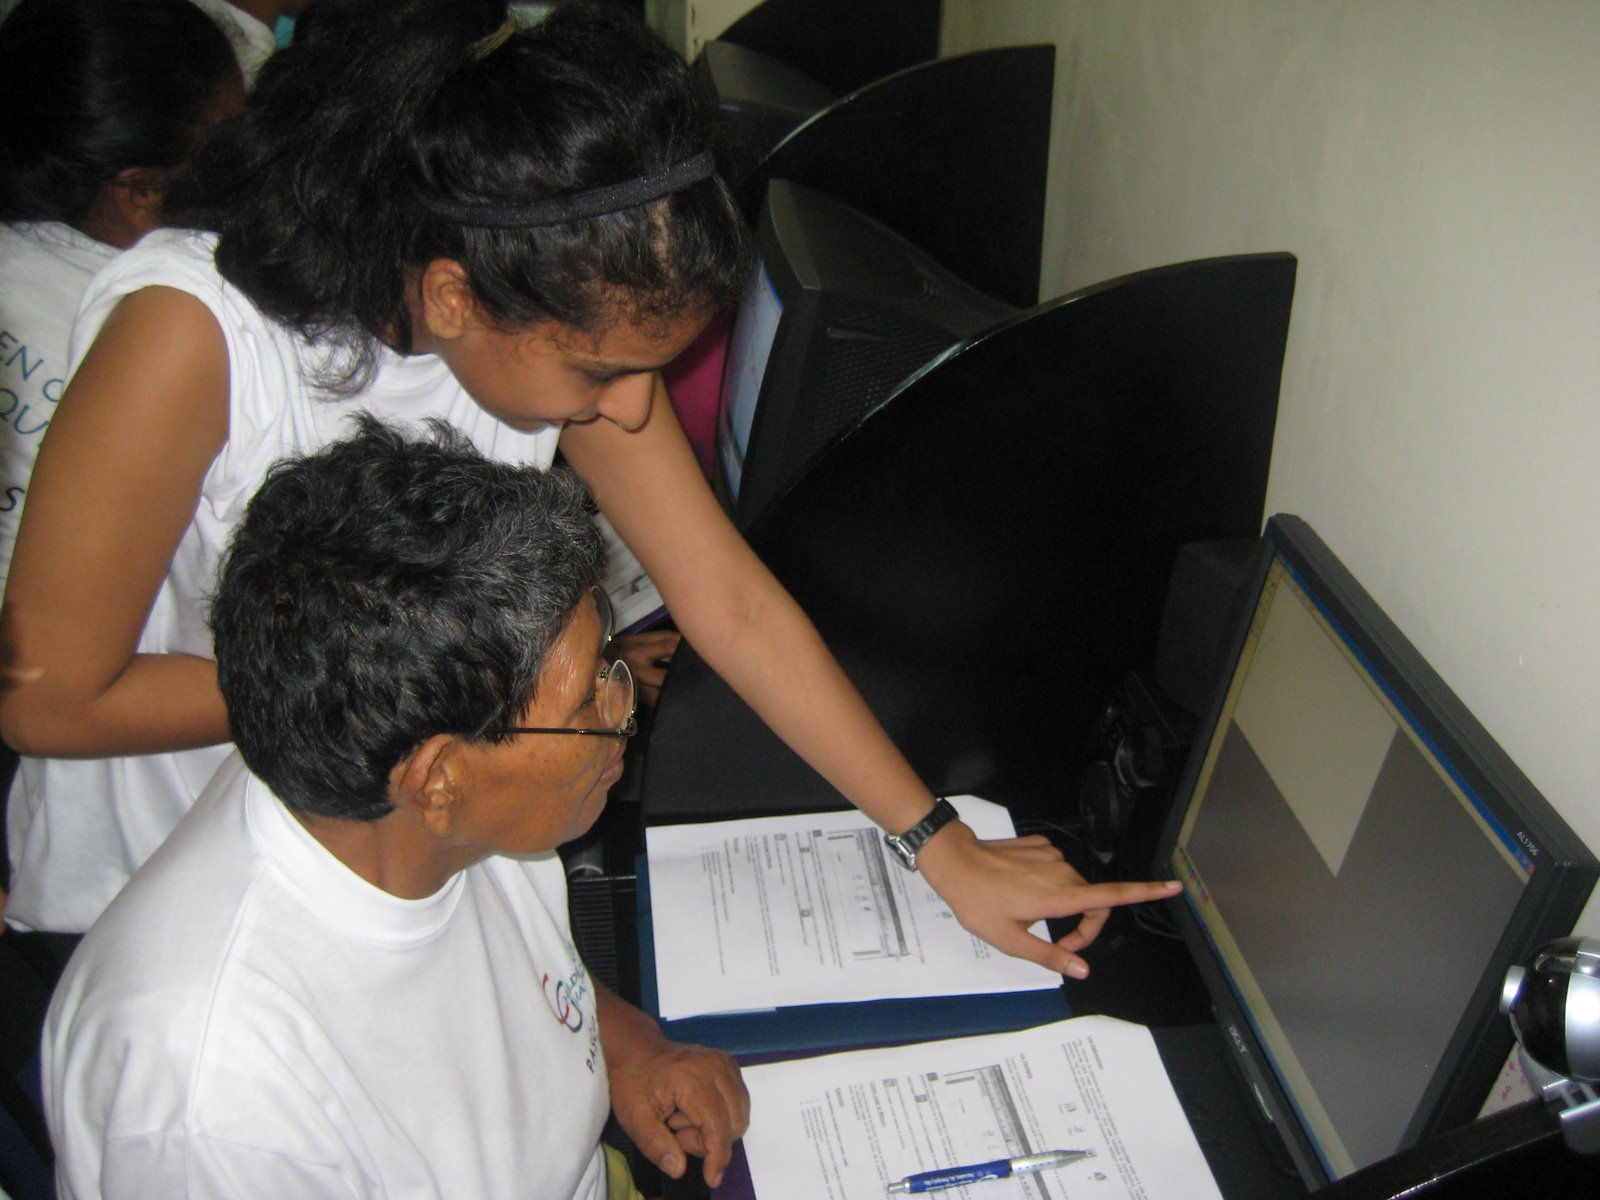 [Nisha+giving+instructions+to+Beatriz+in+her+first+computer+class.jpg]